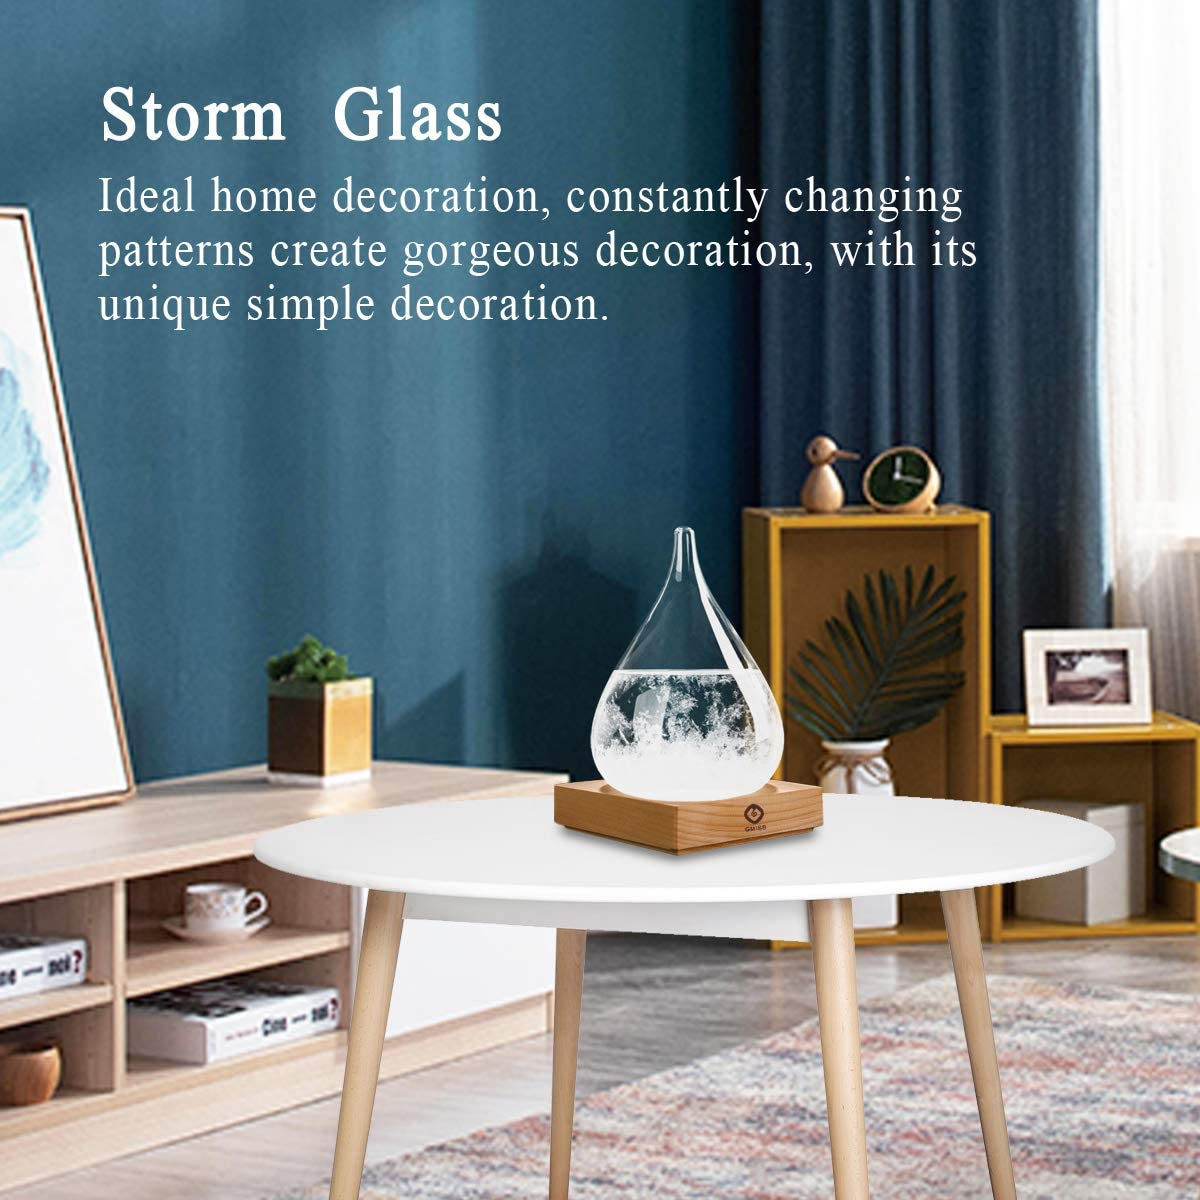 Storm Glass Weather Stations Water Drop Weather Predictor Creative Forecast Nordic style Decorative Weather Glass